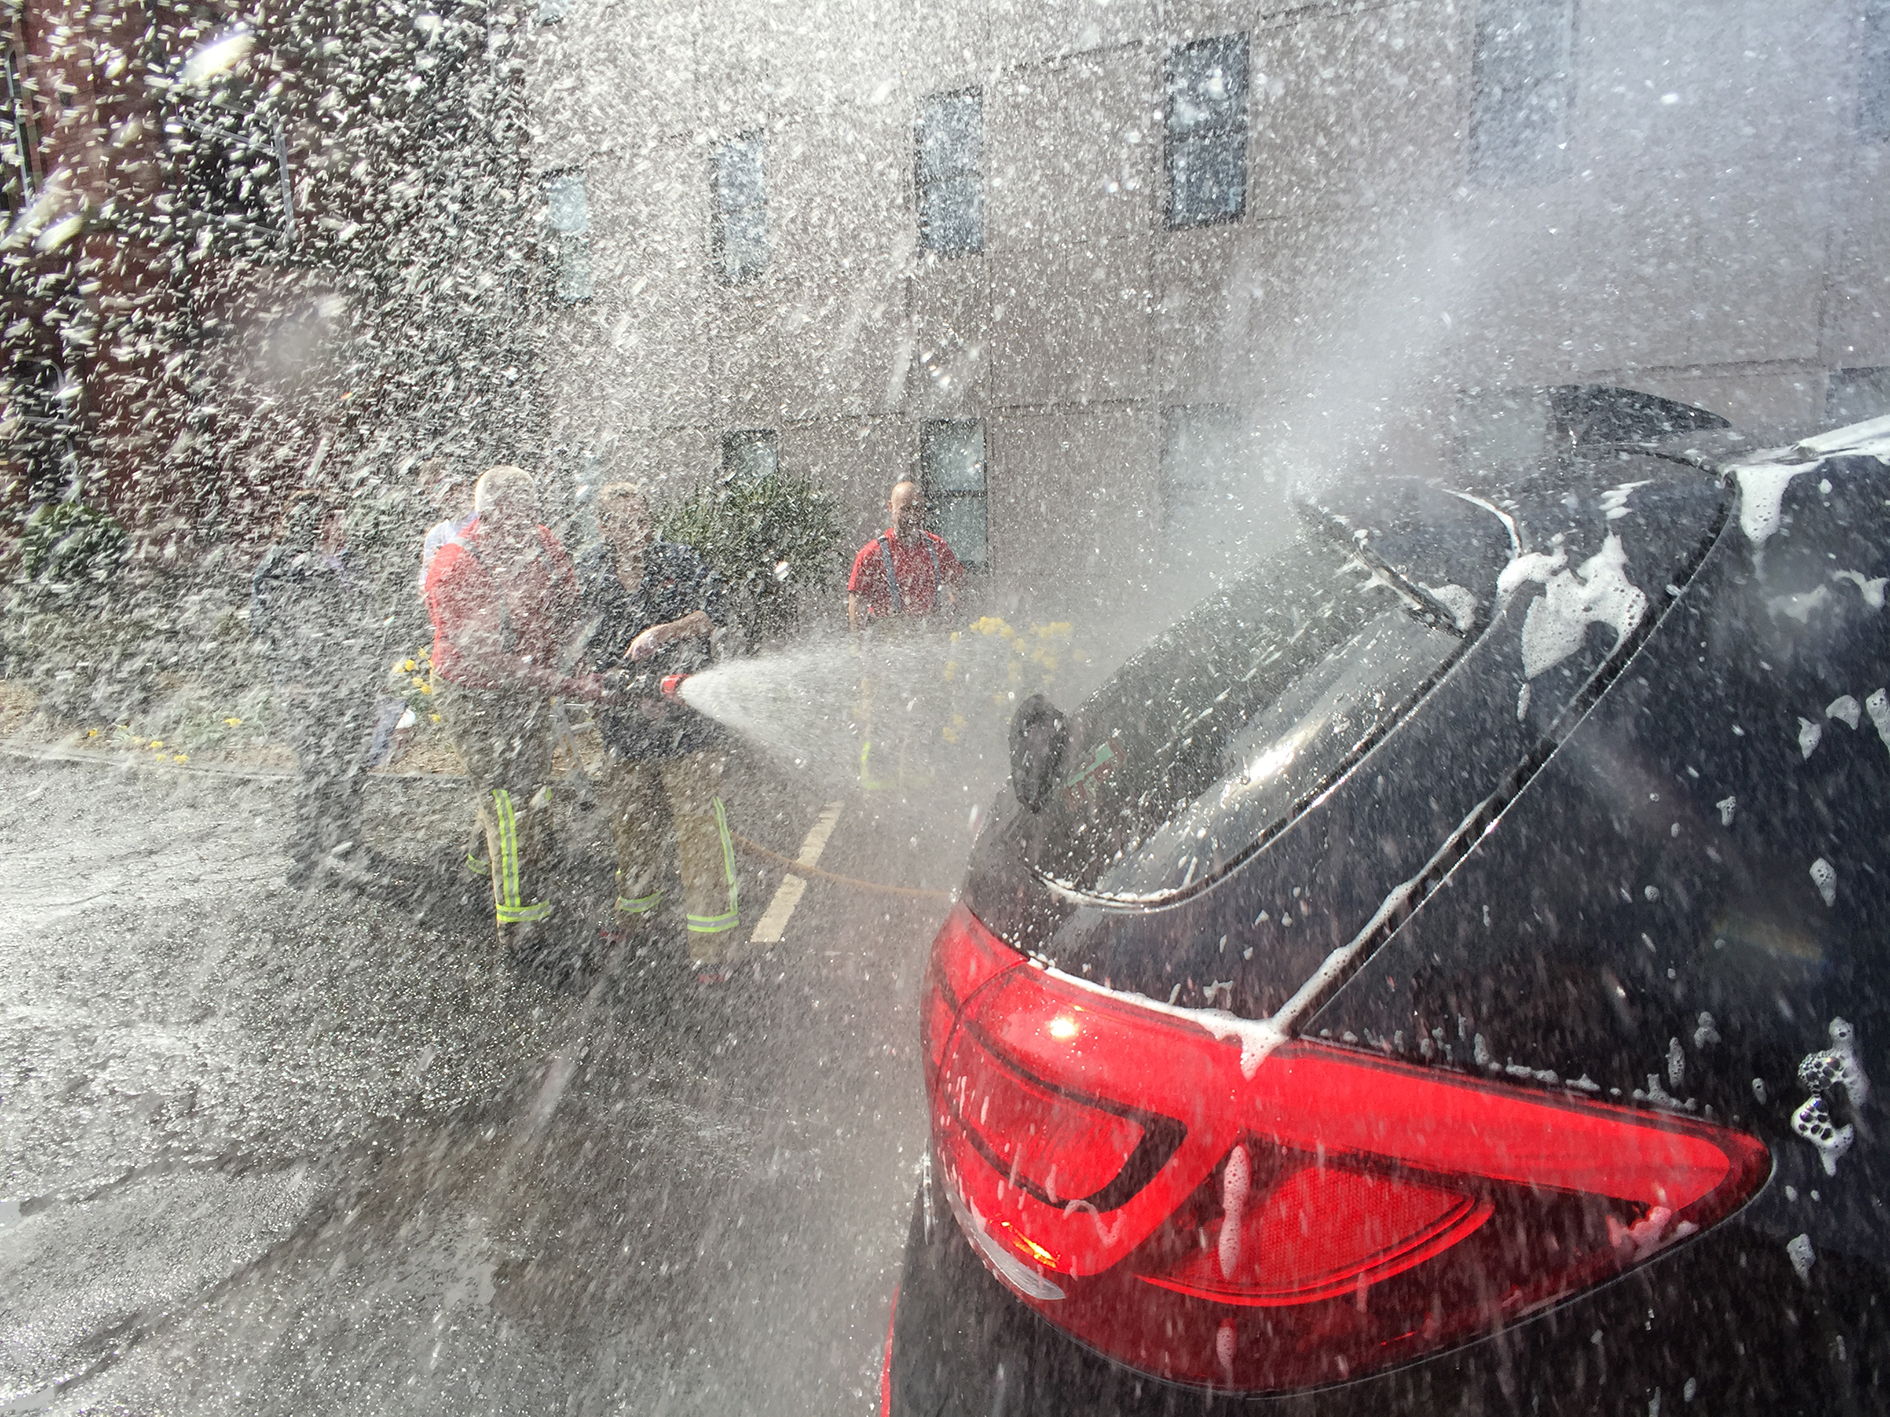 Firefighter S Charity Car Washes Lancashire Fire And Rescue Service